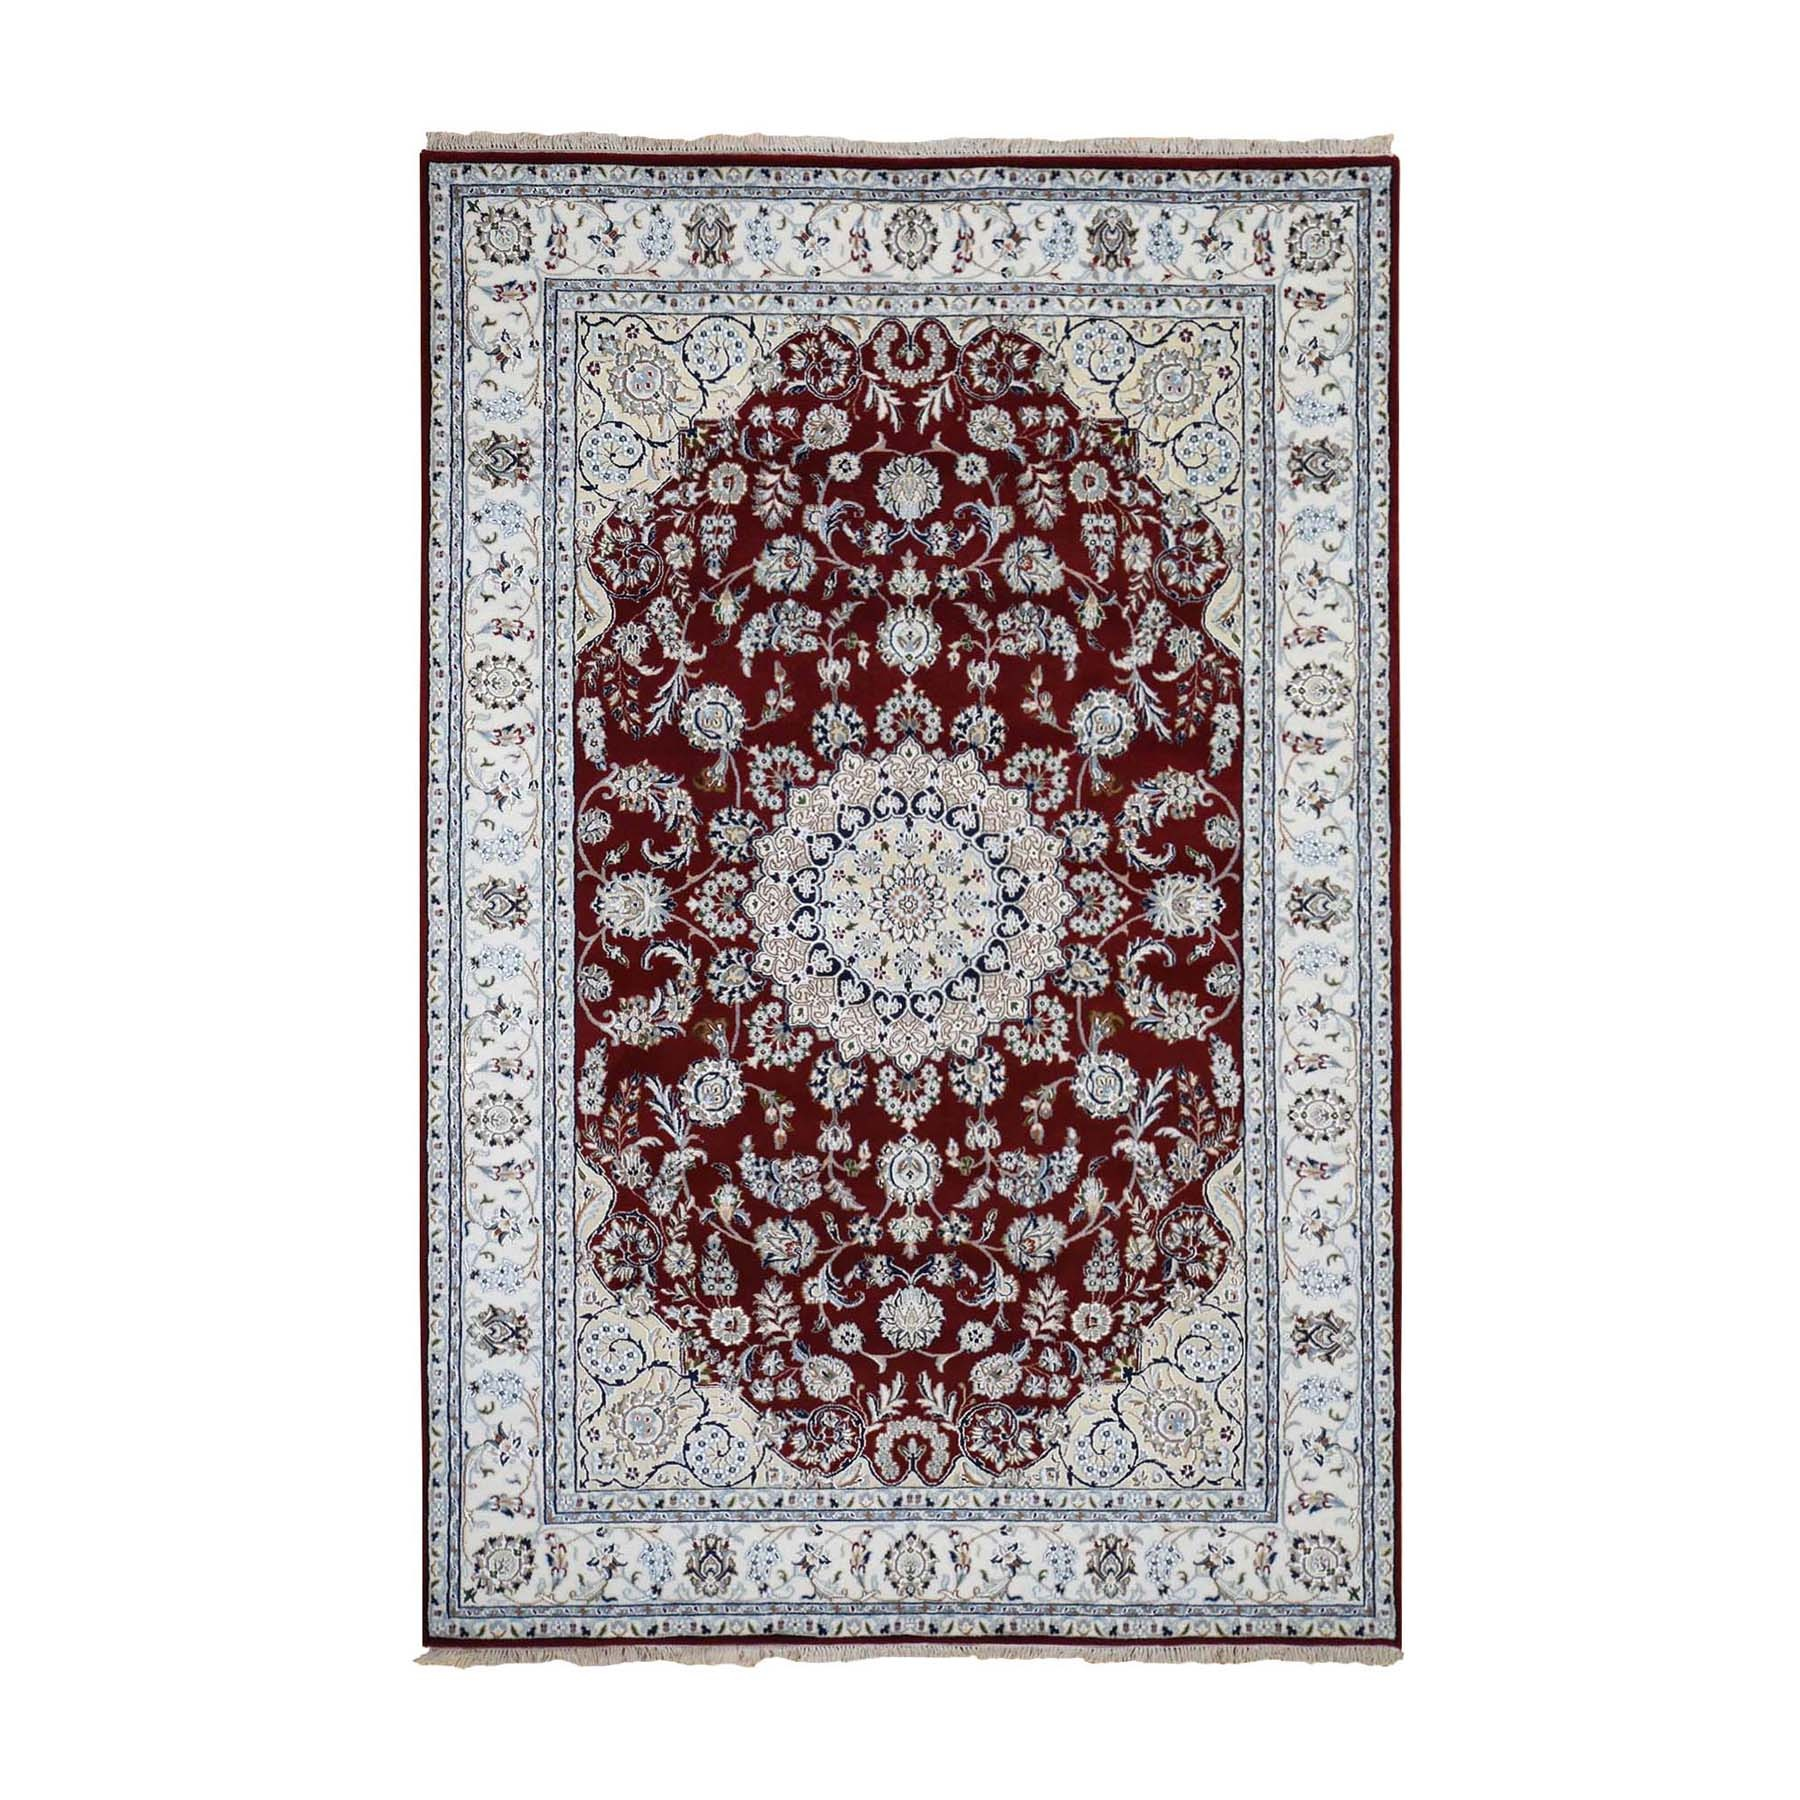 "5'7""x9' Red Wool and Silk Nain 250 KPSI Hand Knotted Oriental Rug"